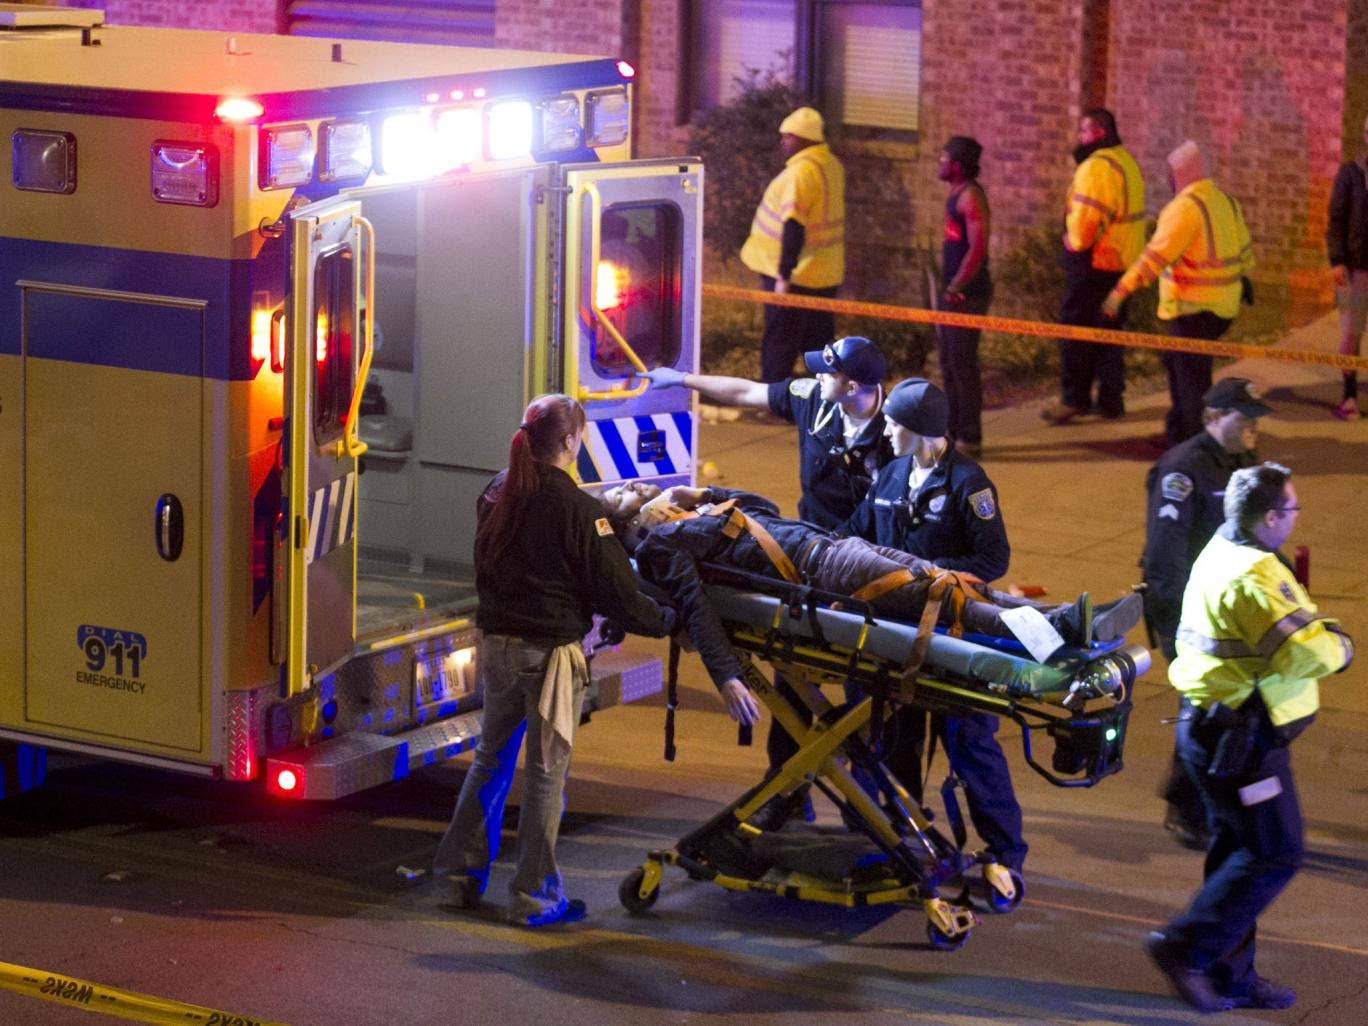 A man is transported to an ambulance after being struck by a vehicle on Red River Street in downtown Austin, Texas, during SXSW